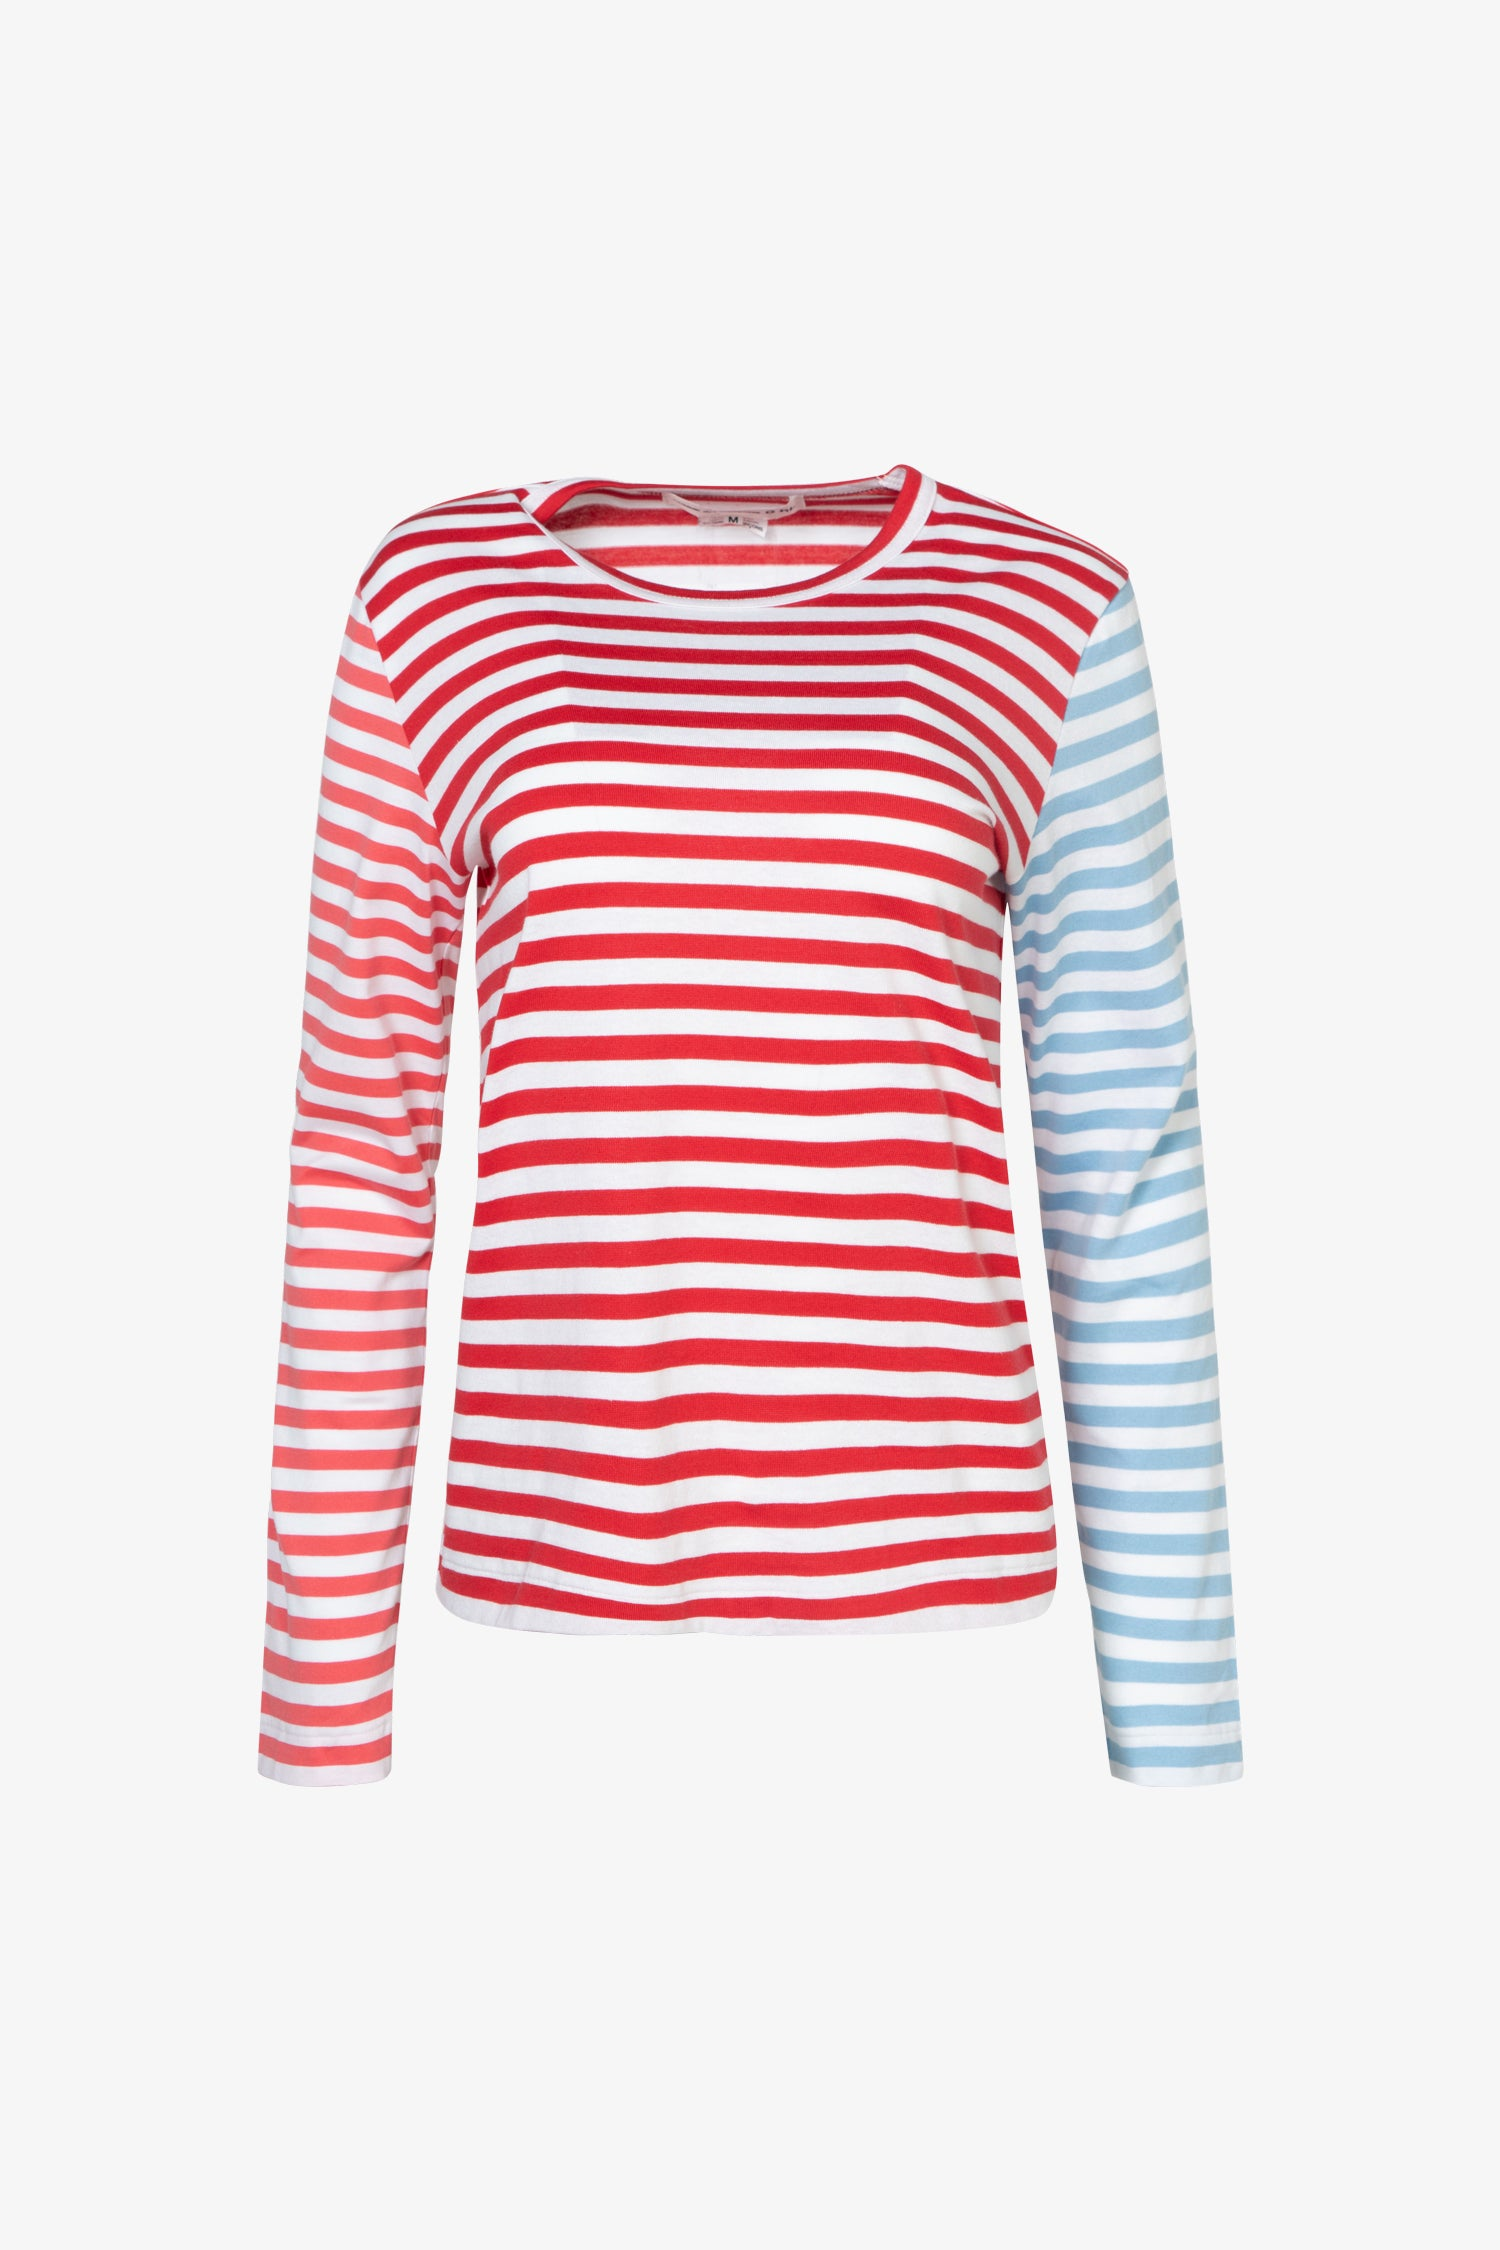 Selectshop FRAME - COMME DES GARCONS GIRL Color-Blocking Stripes Long sleeve T-Shirt T-Shirts Dubai